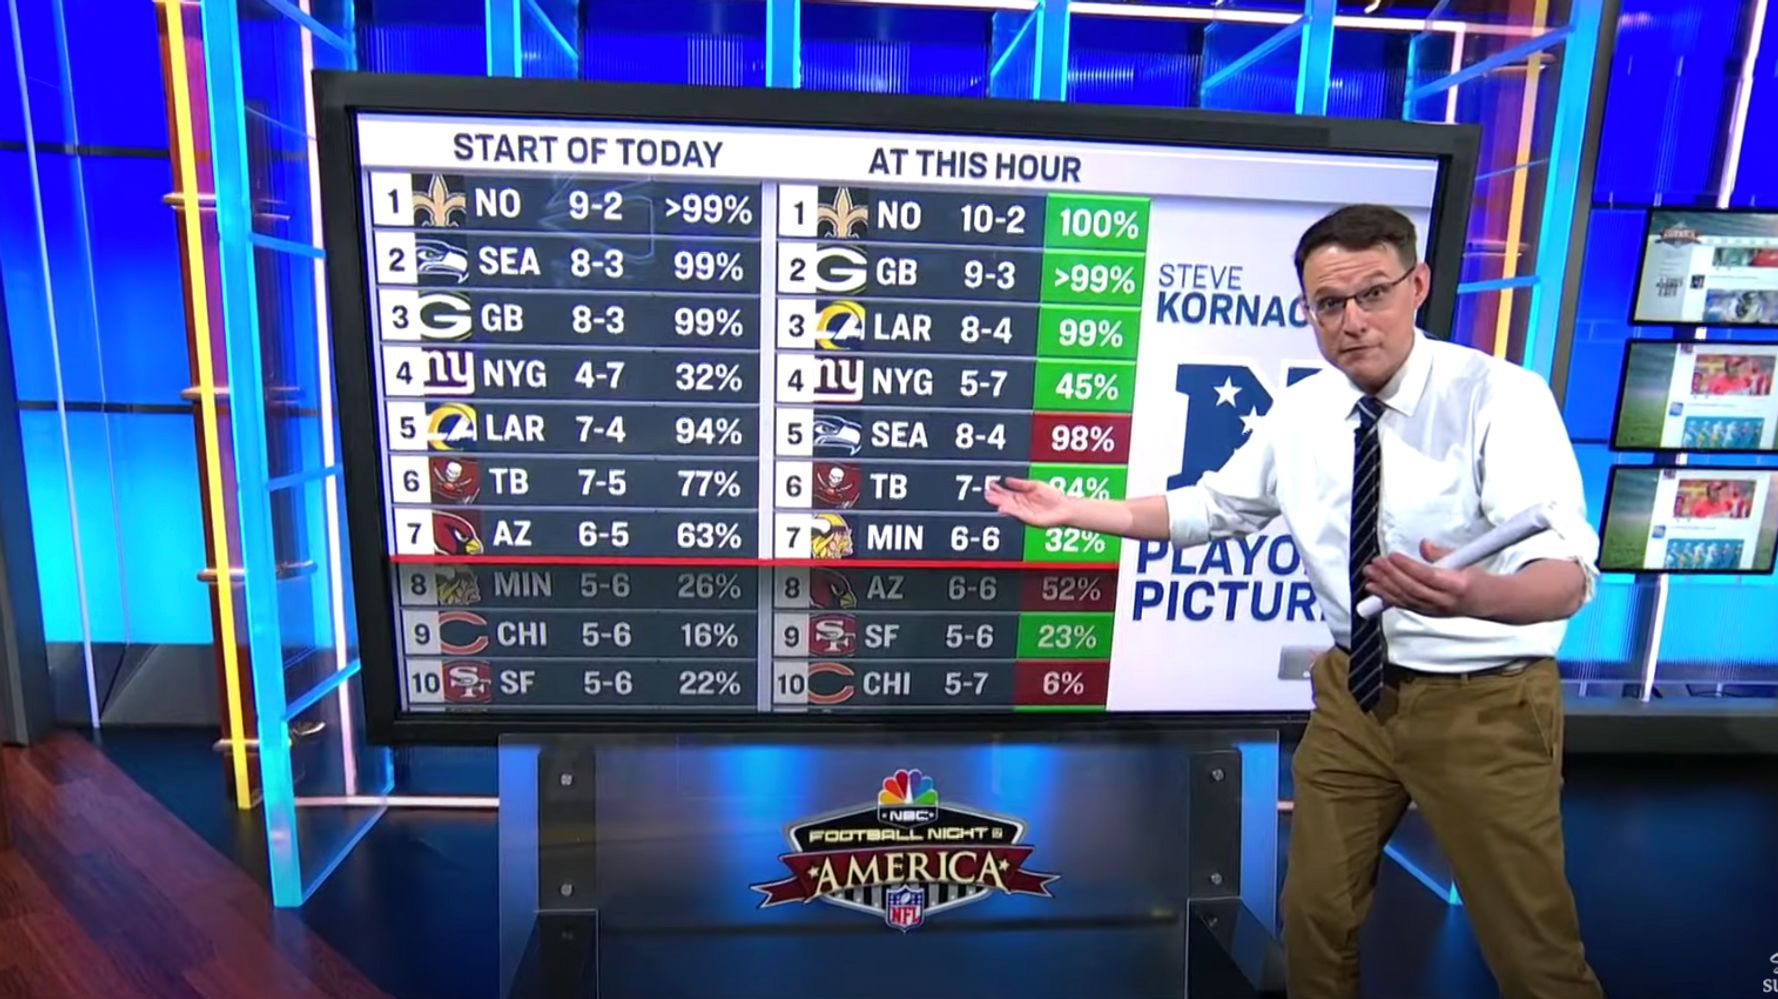 Steve Kornacki's 'Sunday Night Football' Debut Has Election Twitter Going Wild